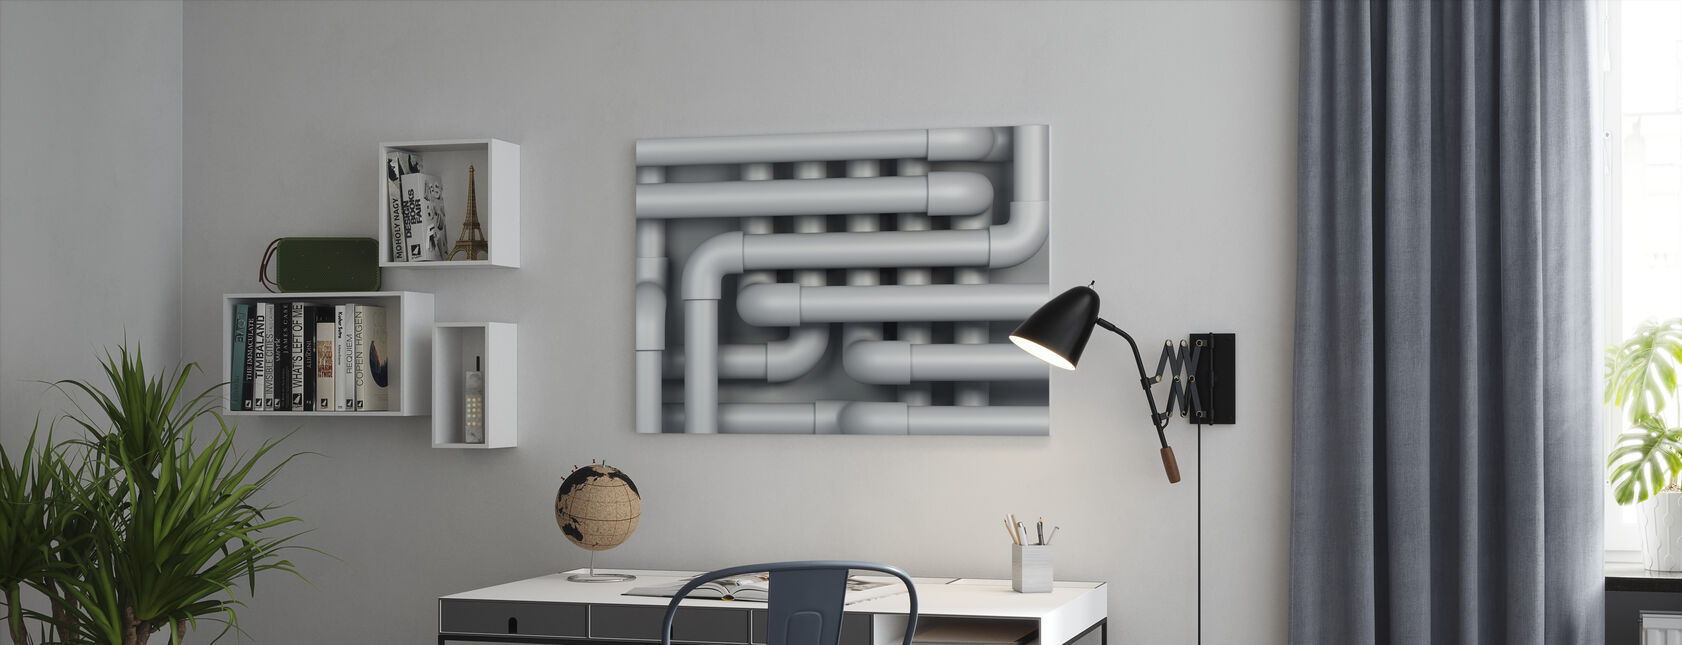 Drain Pipes - Canvas print - Office